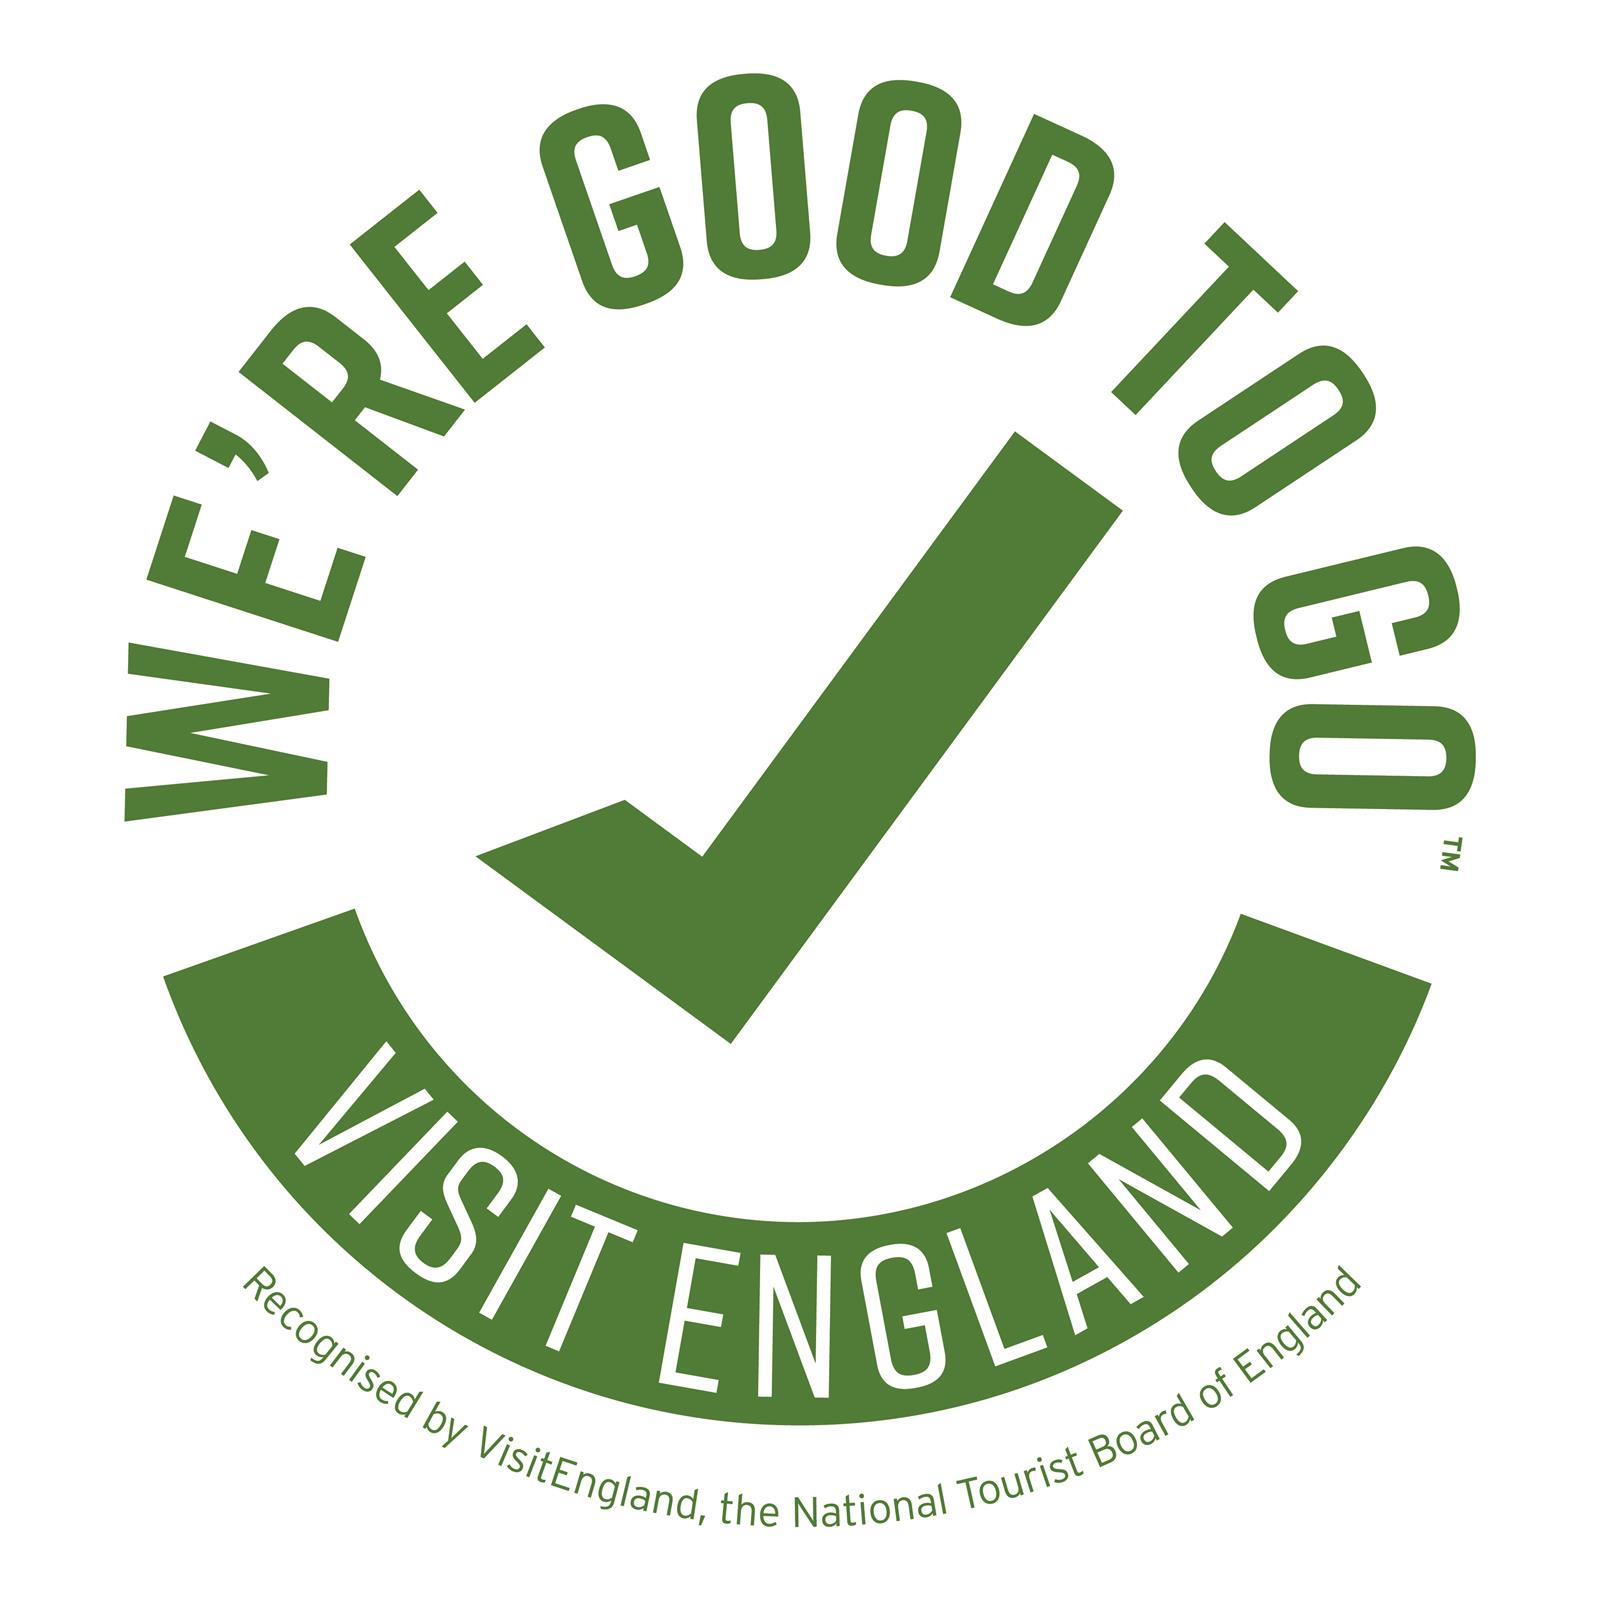 VisitEngland We're Good to Go Accreditation Scheme